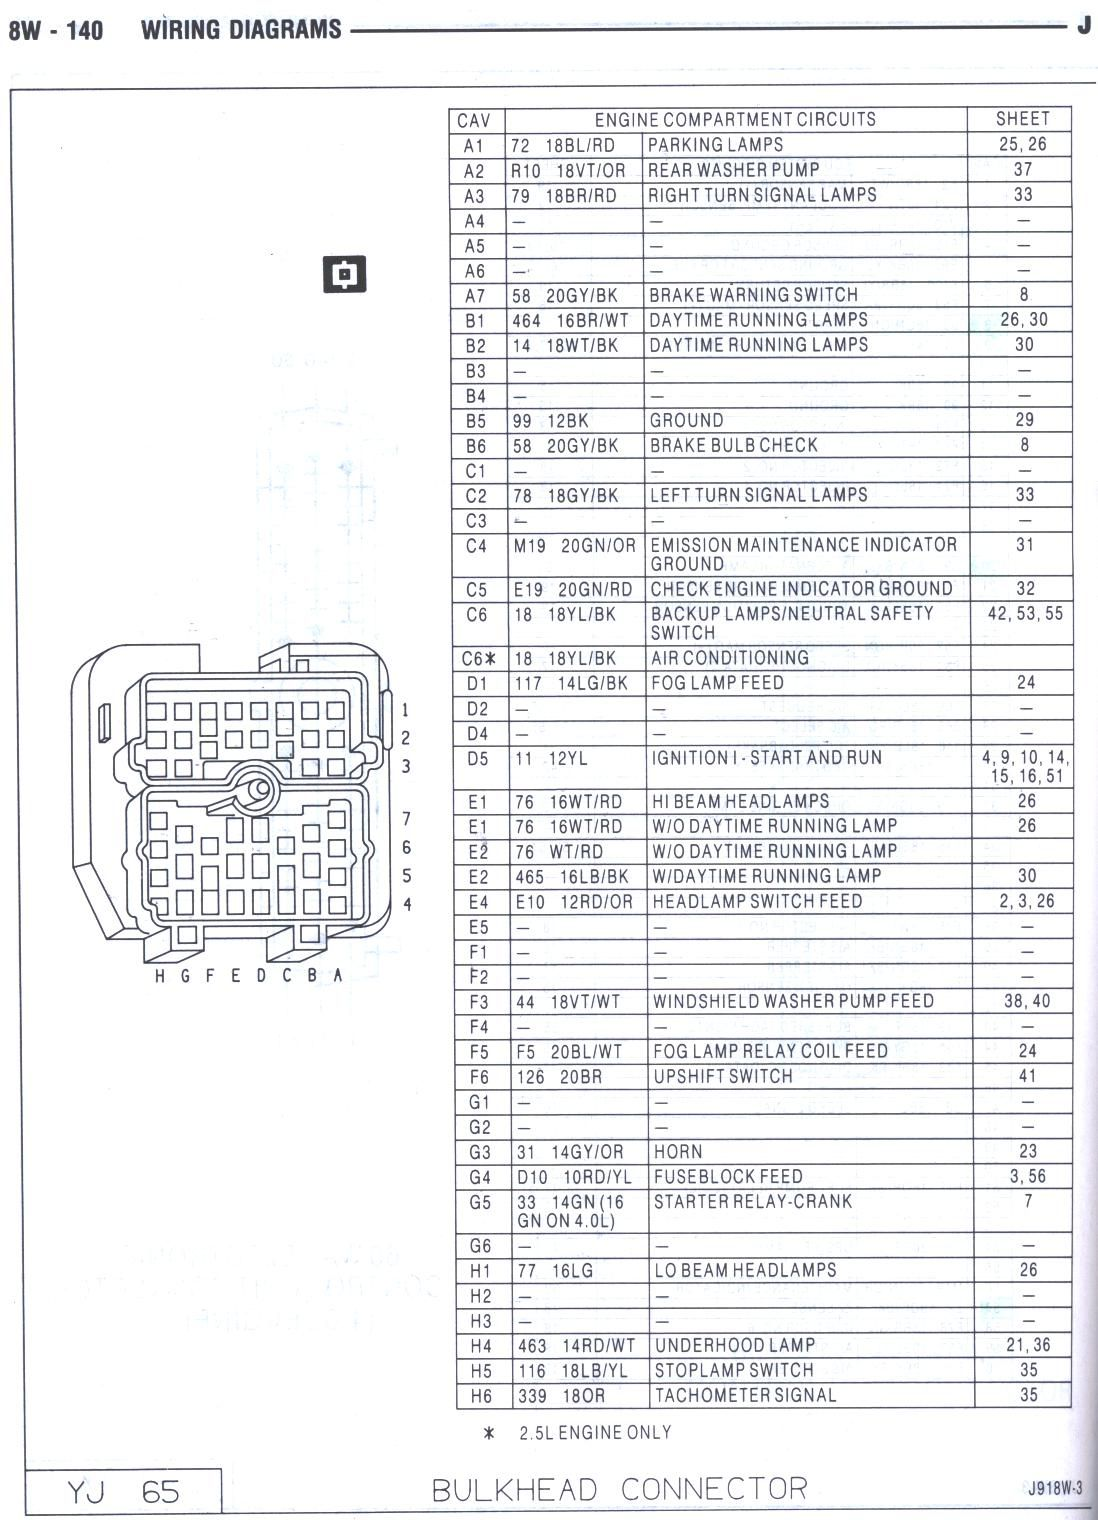 1988 Jeep Wrangler Wiring Diagram Er For Hospital Management System 87 Yj Bulkhead